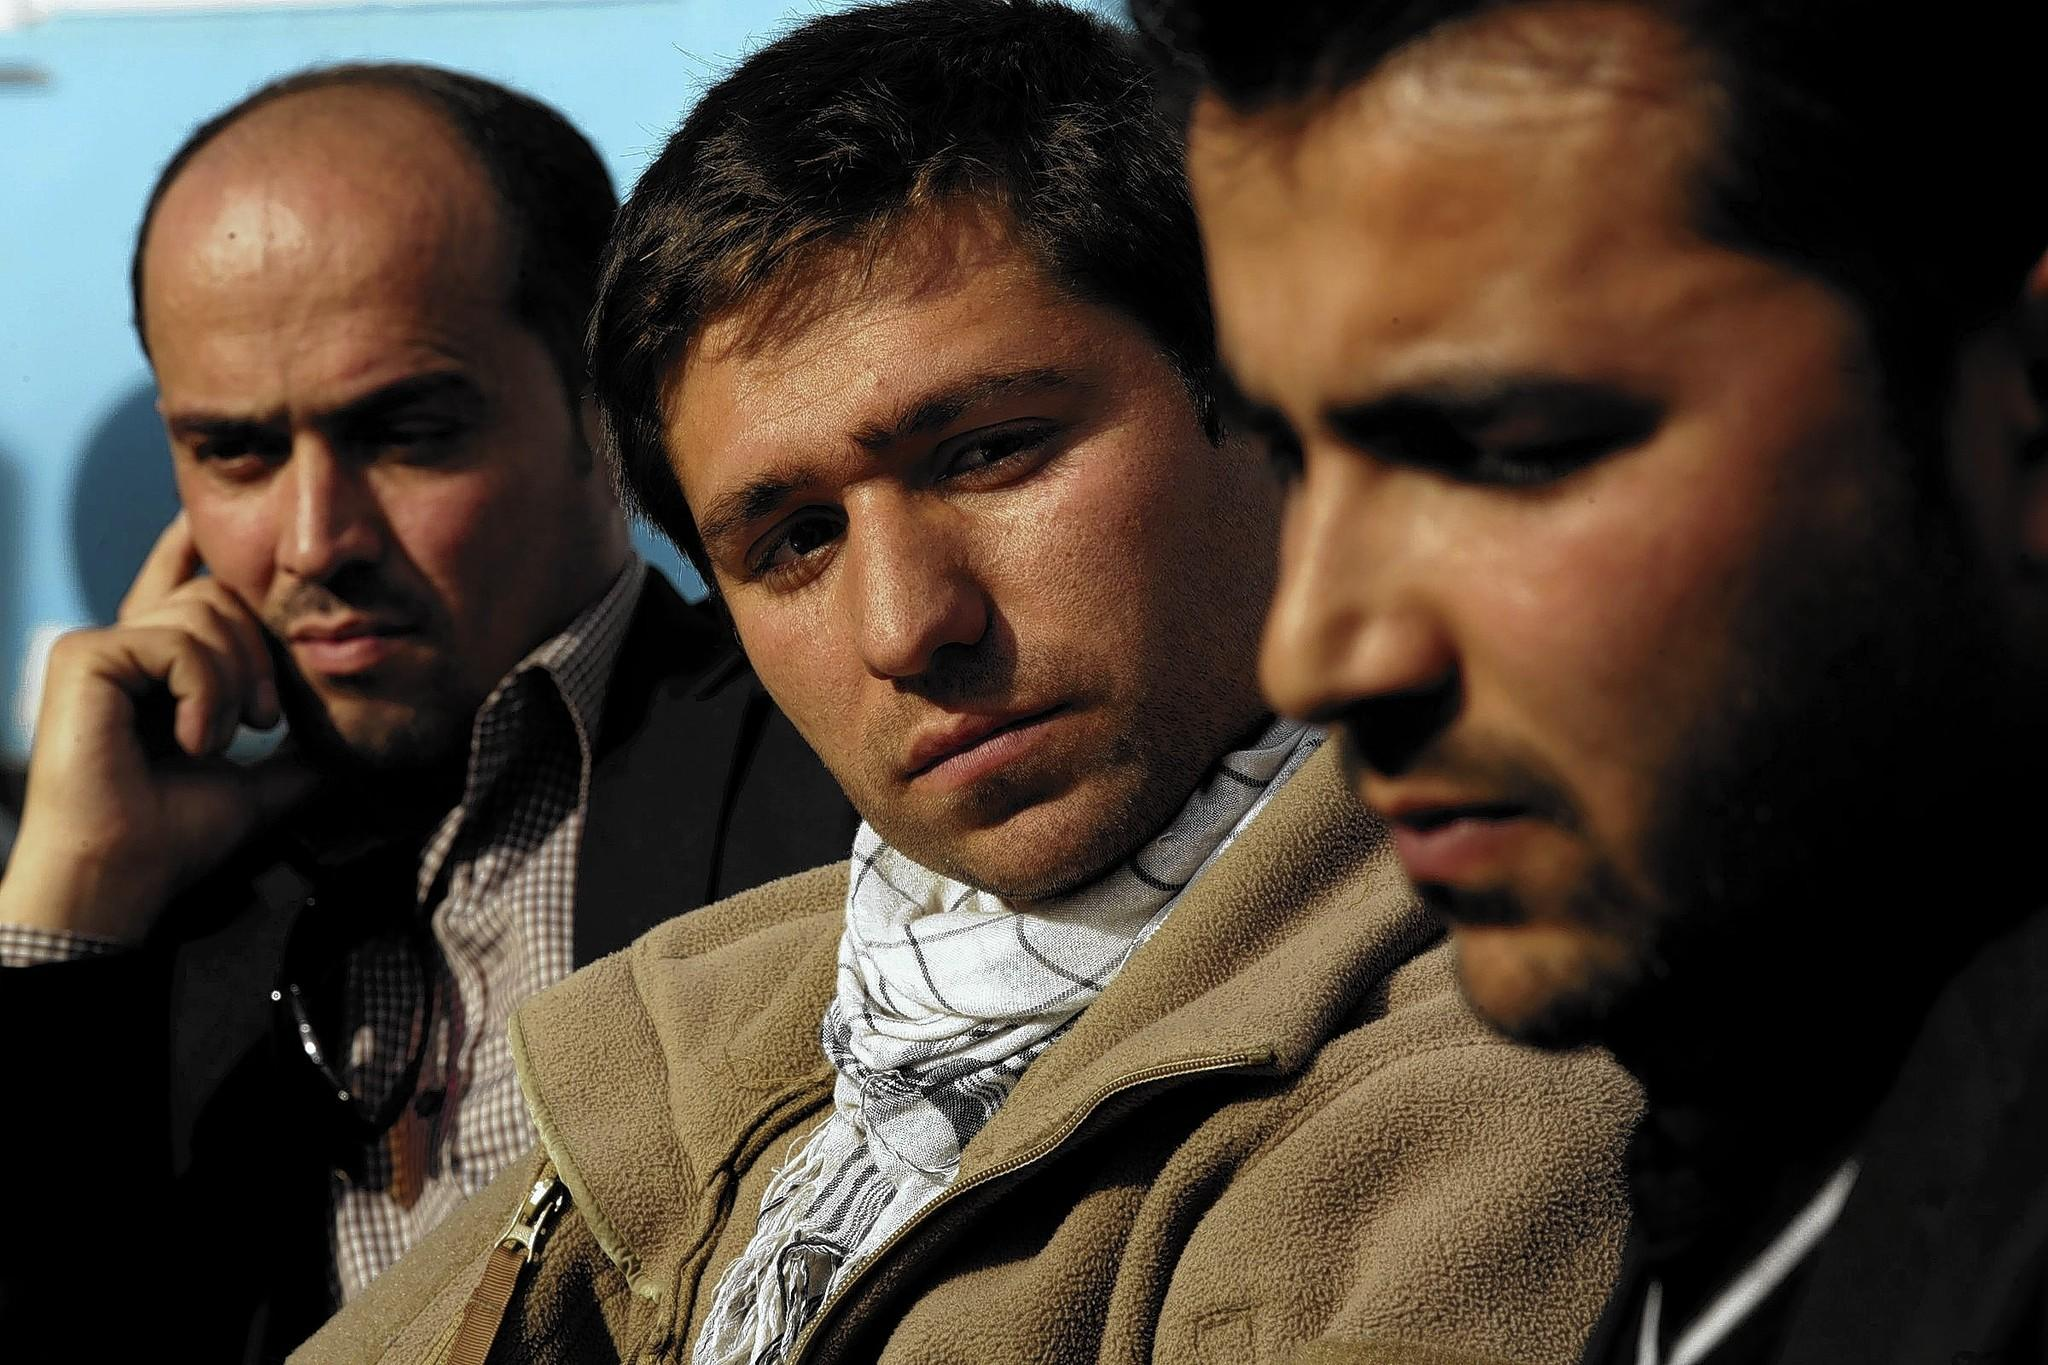 Shafiq Nazari, from left, Shirullah Mirzamalik, and Sardar Khan are among the Afghans who have applied to immigrate to the United States because their work as interpreters for the U.S. military has left them vulnerable to militant retaliation.